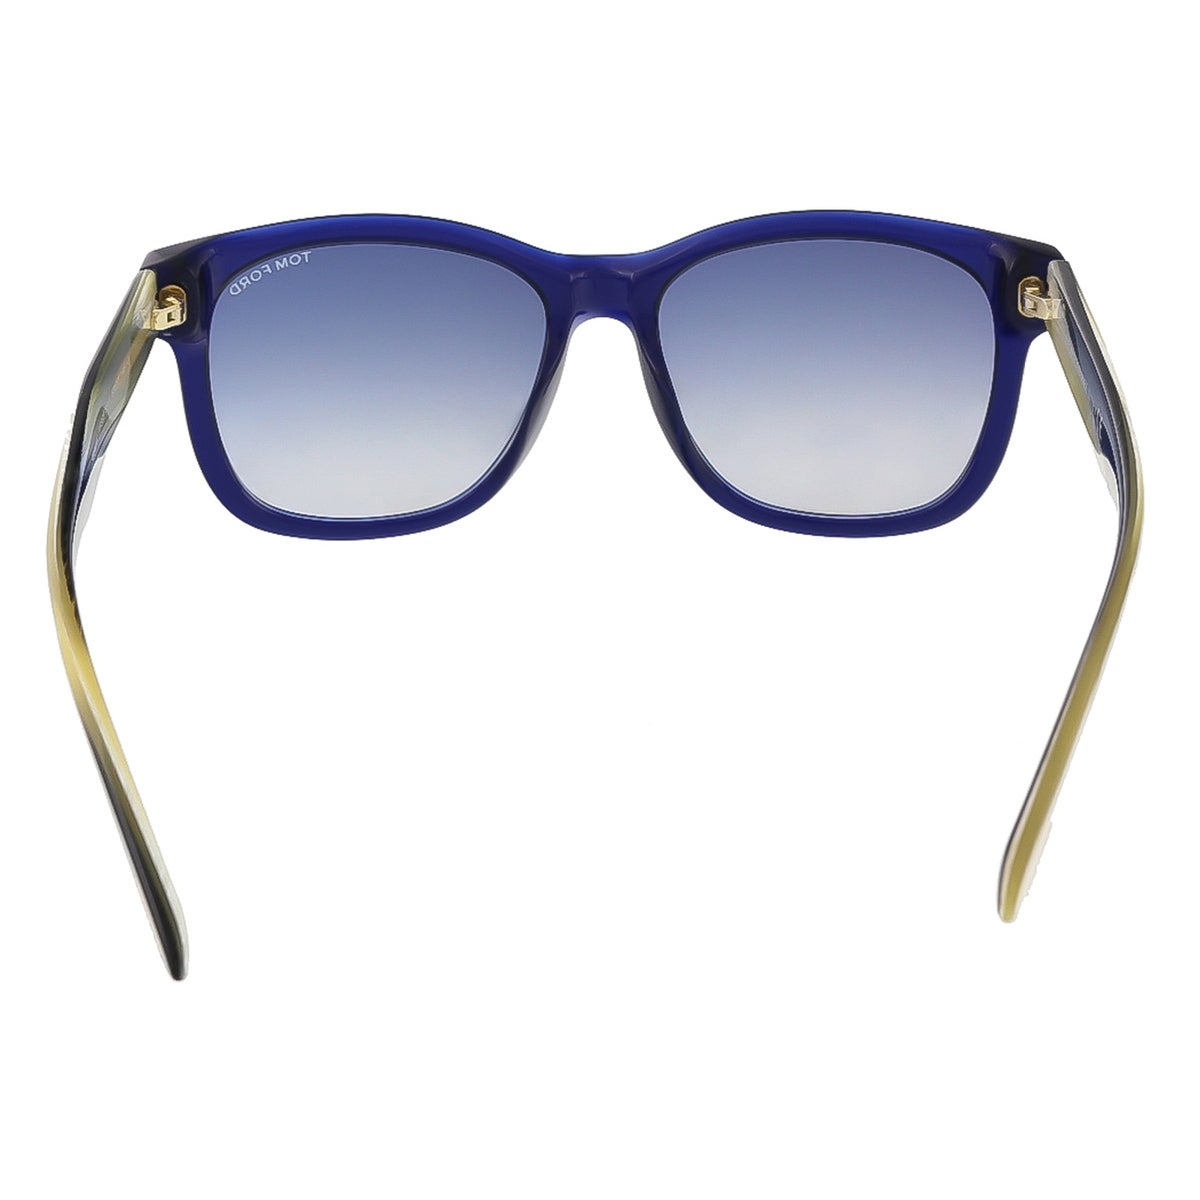 59f60d58d8 Shop Tom Ford FT0395 S 89W Cooper Navy Blue Rectangle Sunglasses -  57-17-145 - Ships To Canada - Overstock - 13318306